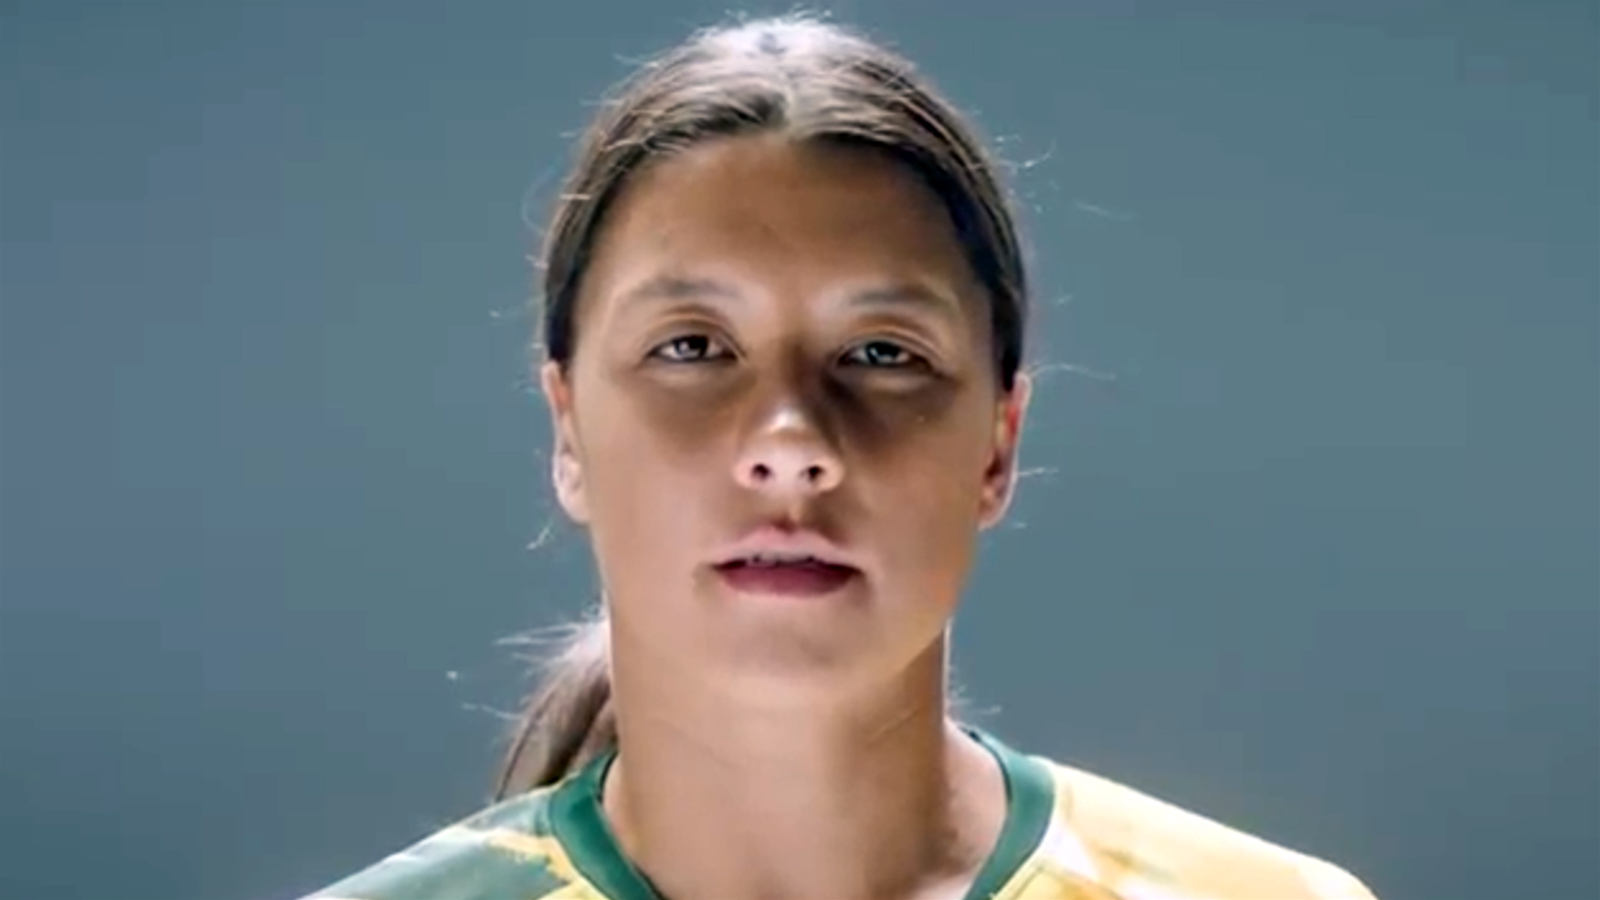 Watch! Sam Kerr fronts Australia's 2023 World Cup bid